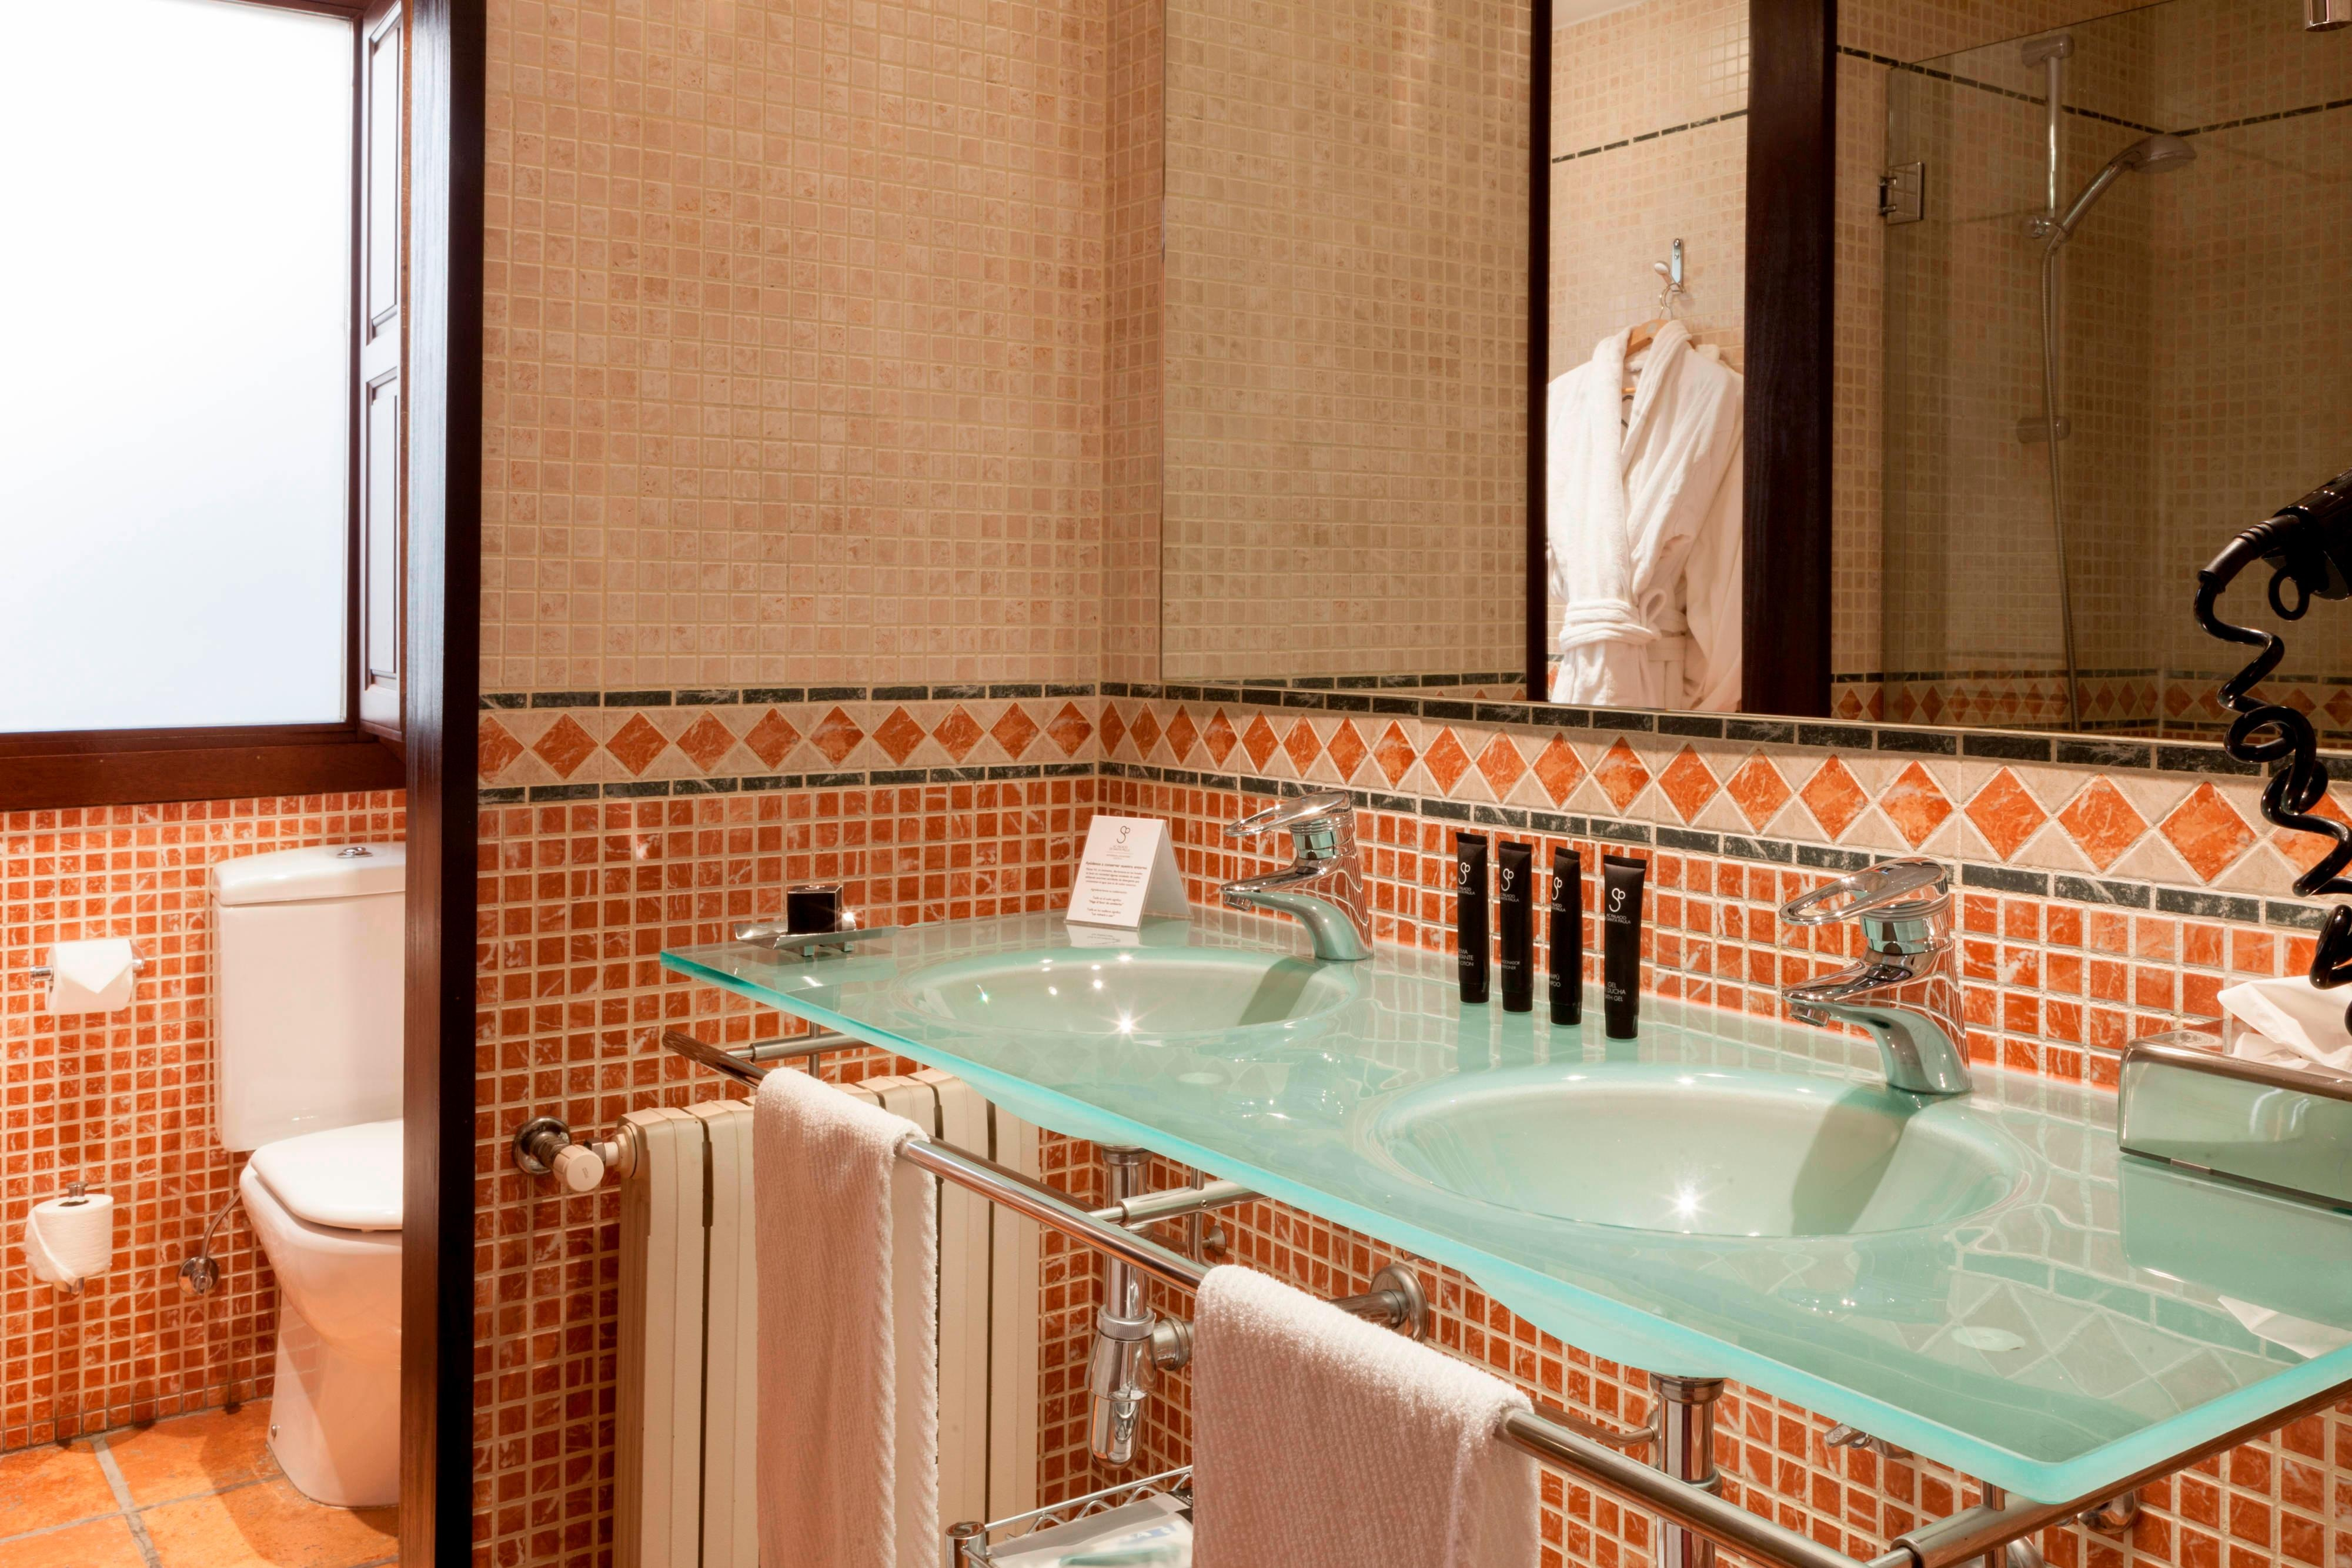 superior room bathroom in granada center